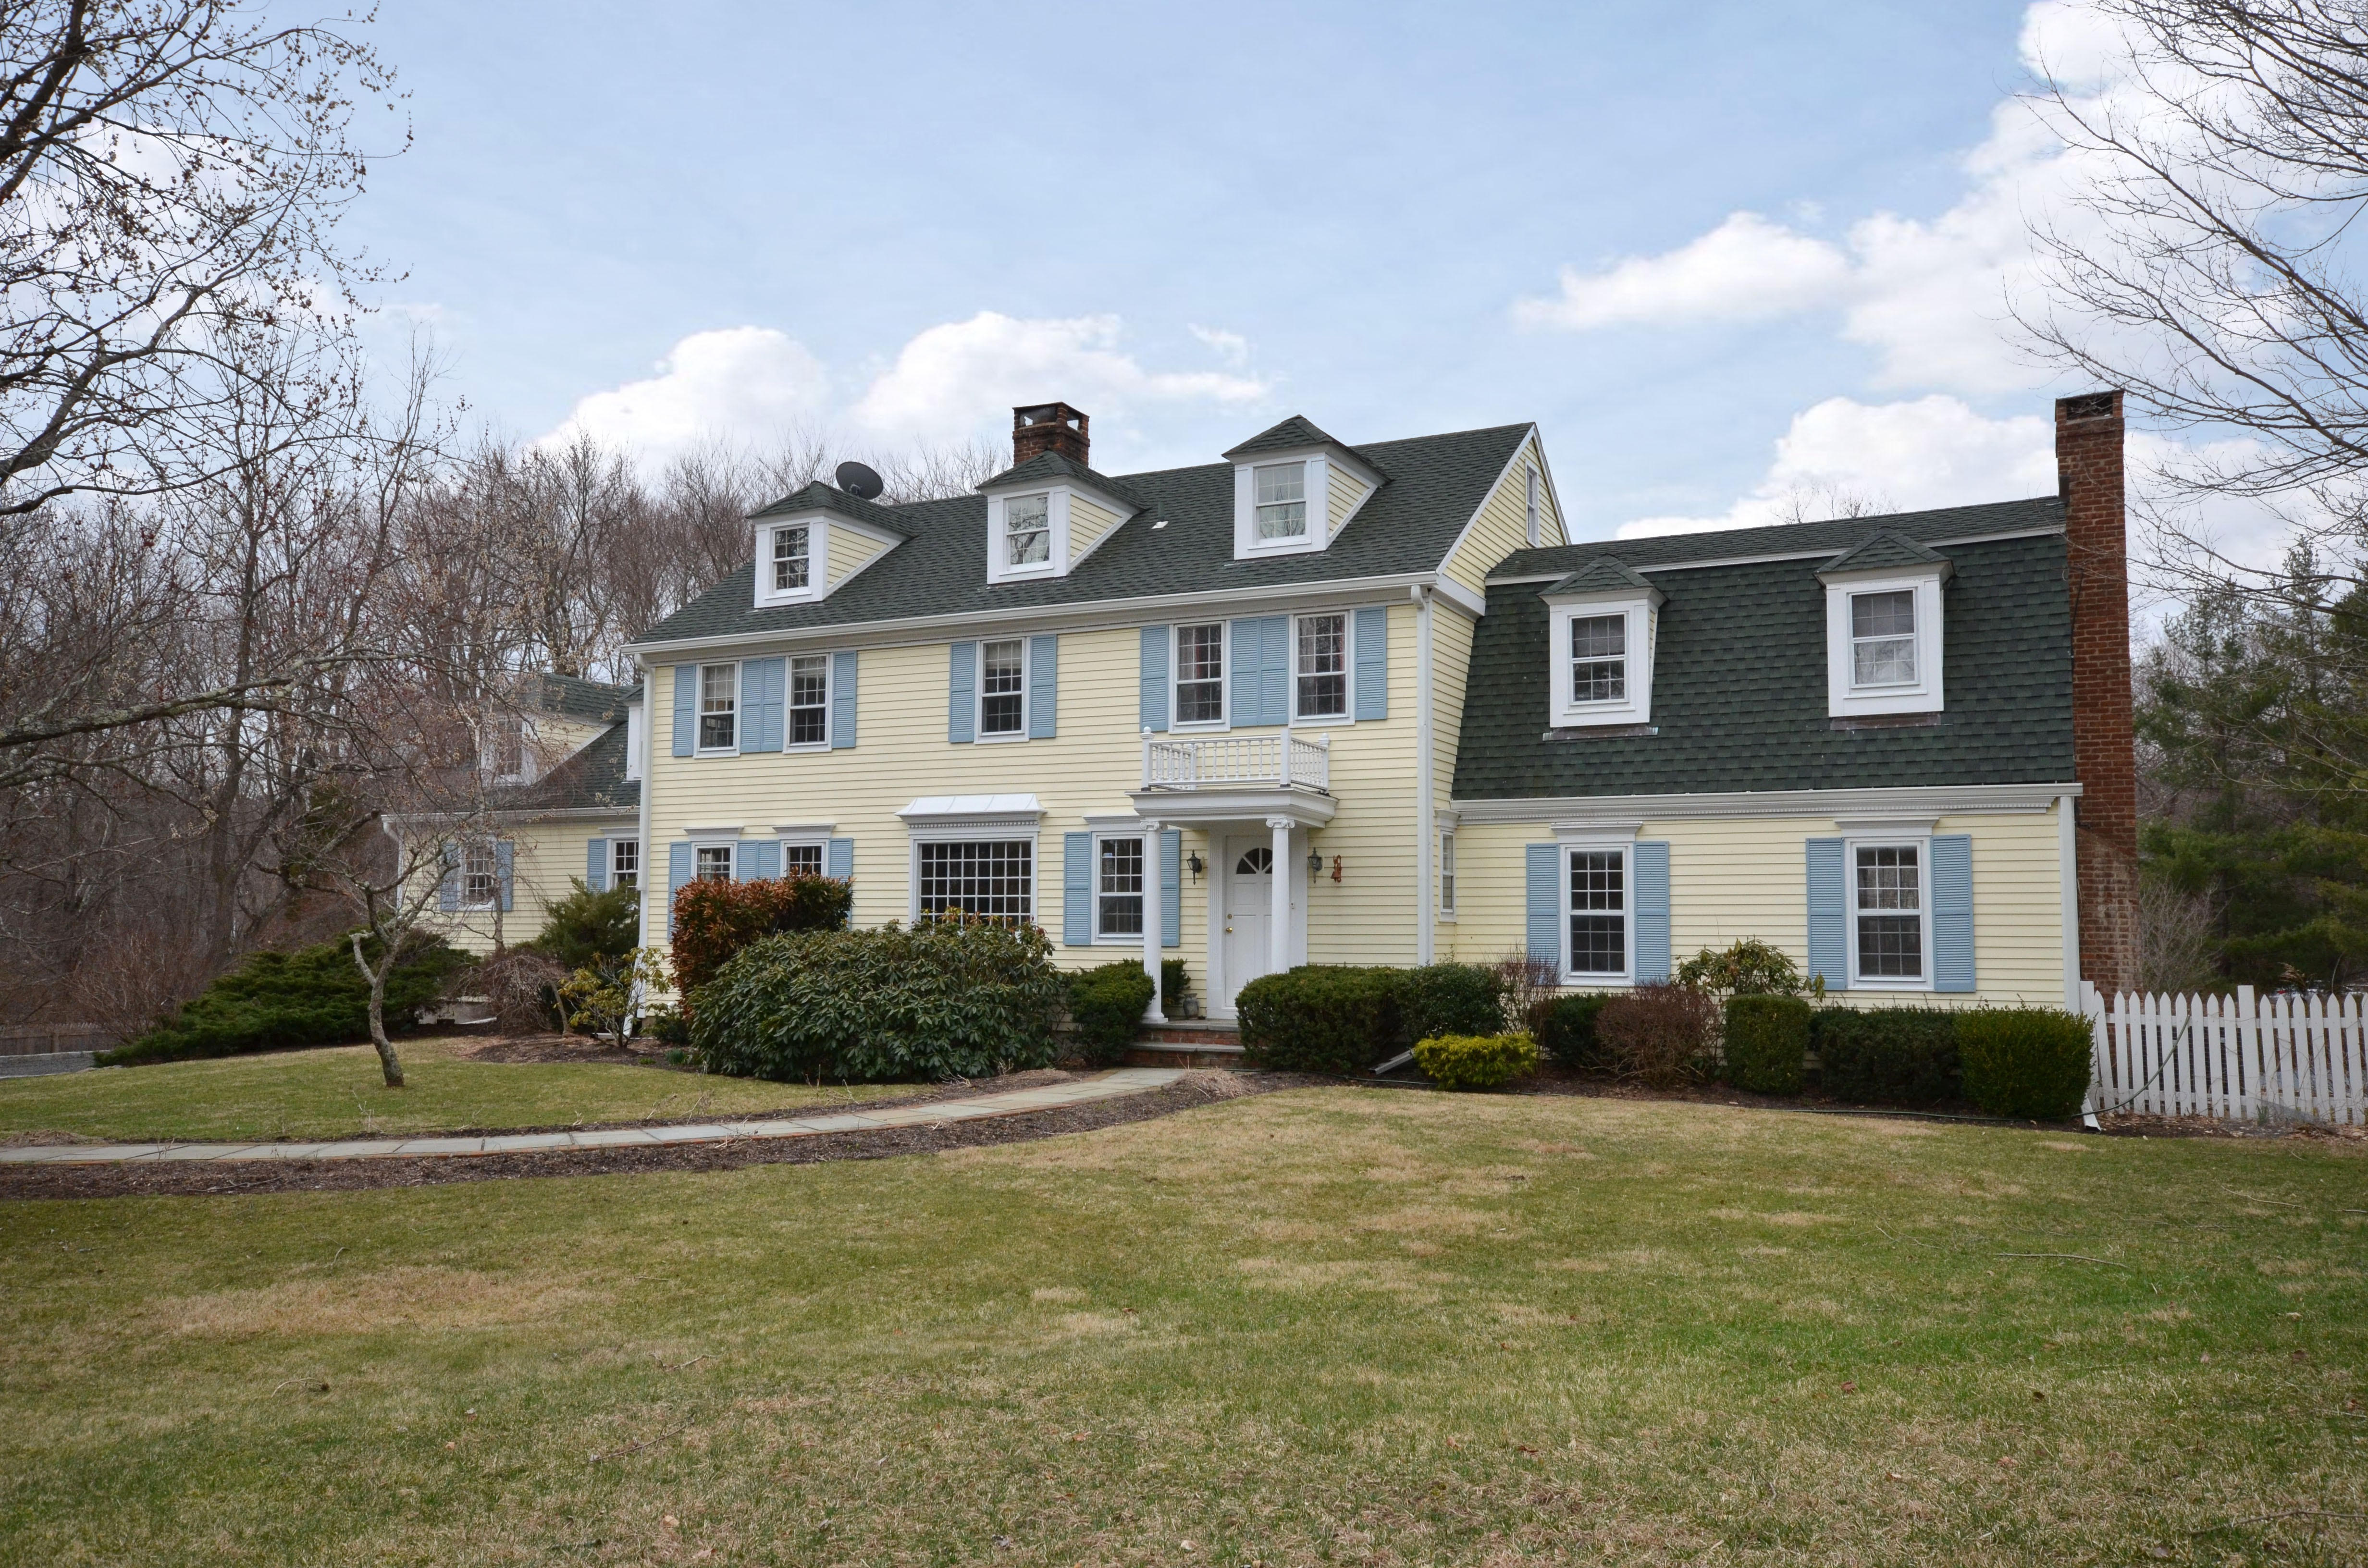 Single Family Home for Sale at Classic 5 Bedroom Colonial 701 Ridgefield Road Wilton, Connecticut 06897 United States